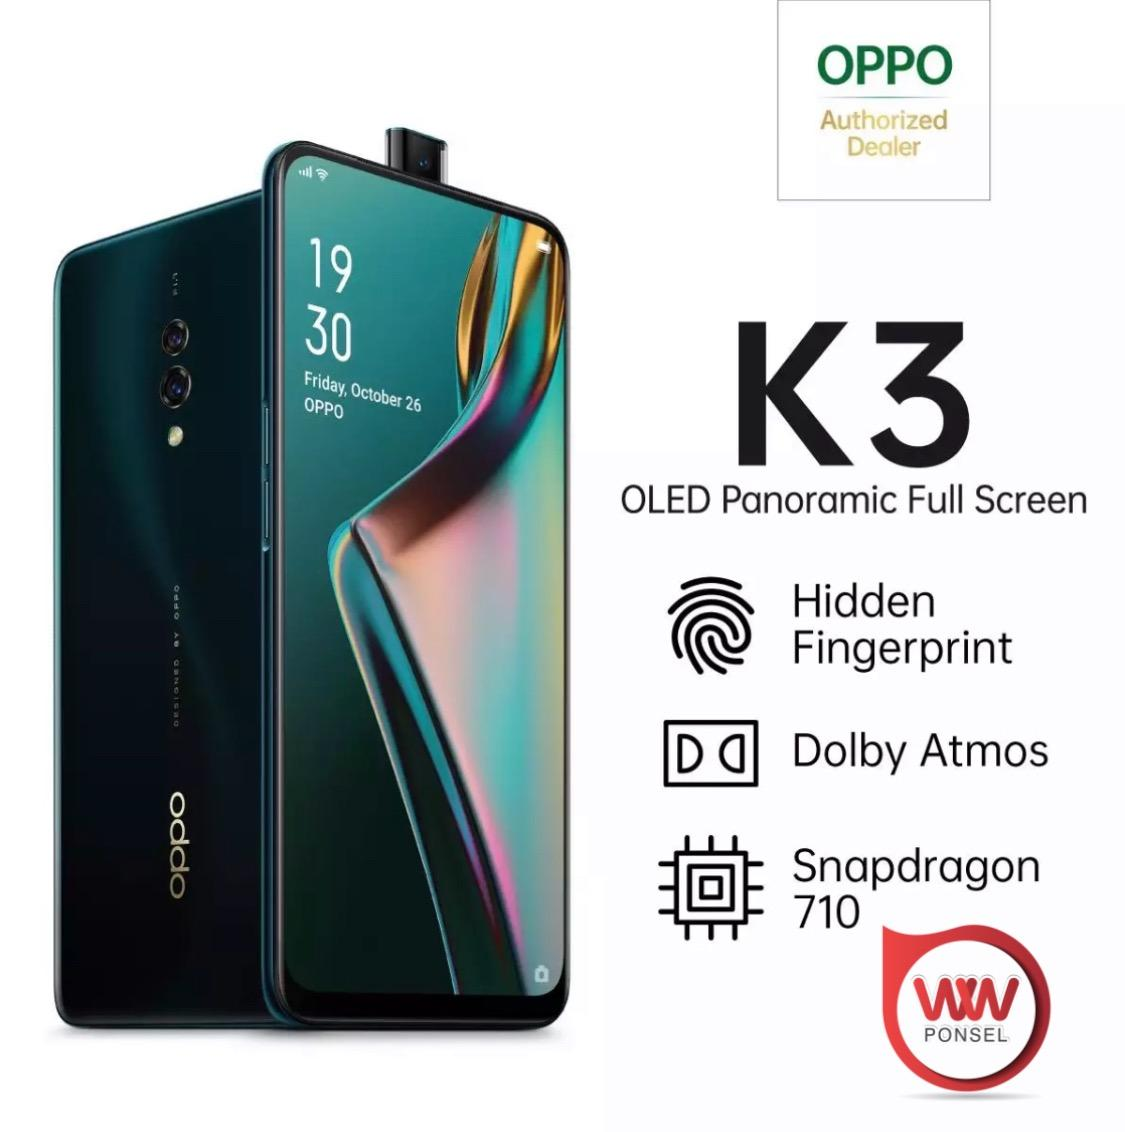 OPPO K3 Special Online Edition 6/64GB OLED Panoramic Screen, Cicilan 0%,